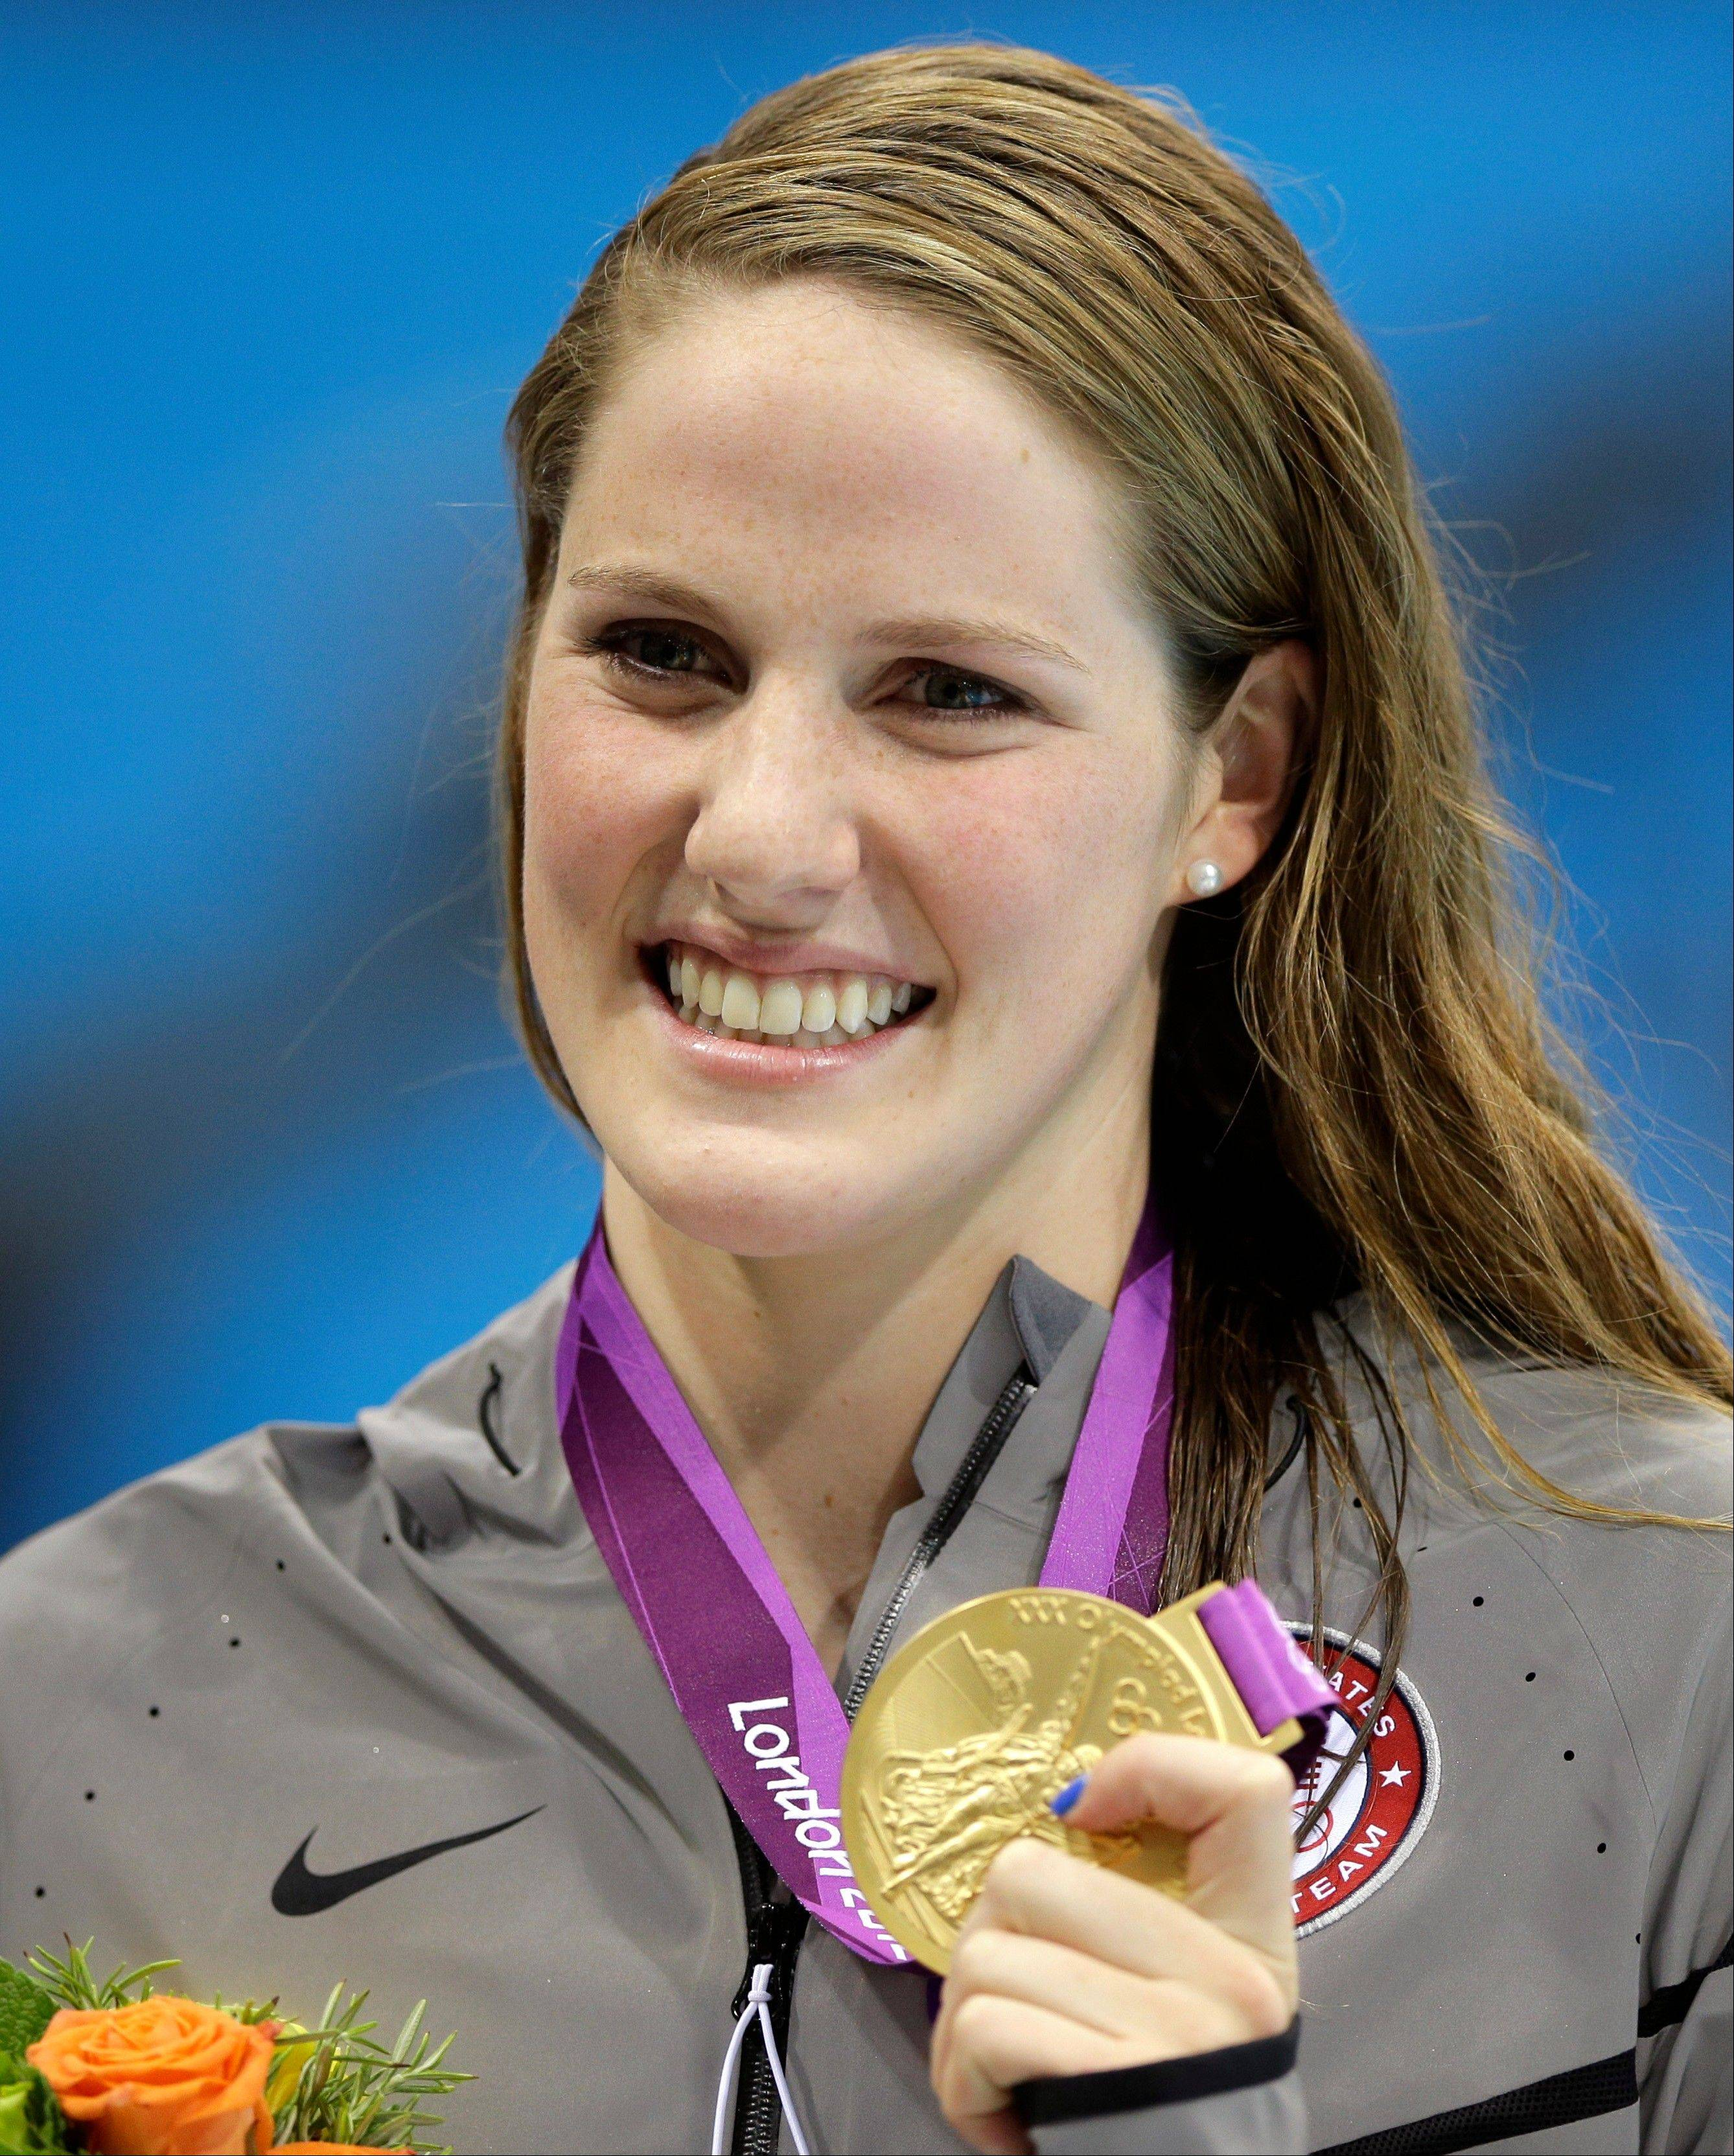 Colorado has seen its share of pain this year with a mass movie theater shooting and deadly wildfires that destroyed hundreds of homes. But when Missy Franklin cinched her first gold medal at the London Olympic Games this week, it was finally time to cheer.